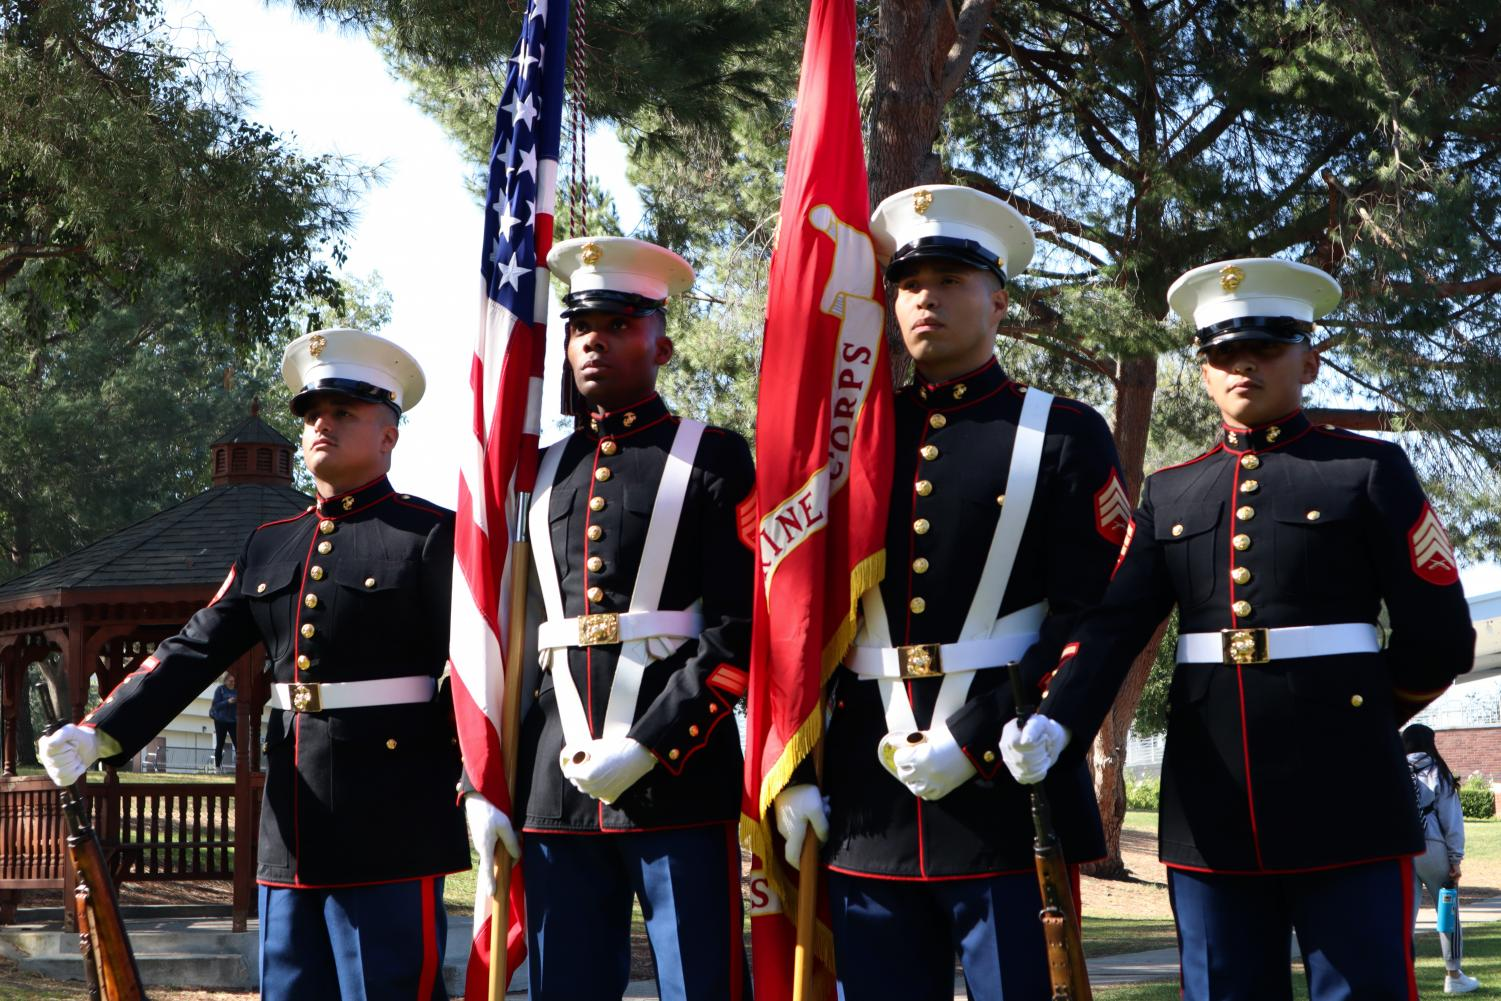 Sgt. Davila Rogger, Staff Sgt. Stephen Miller, Sgt. Francisco Gama, Sgt. Loya Alvin of the Color Guard Weapons Company prepare to march for the National Anthem during a veteran's celebration at California Lutheran University.